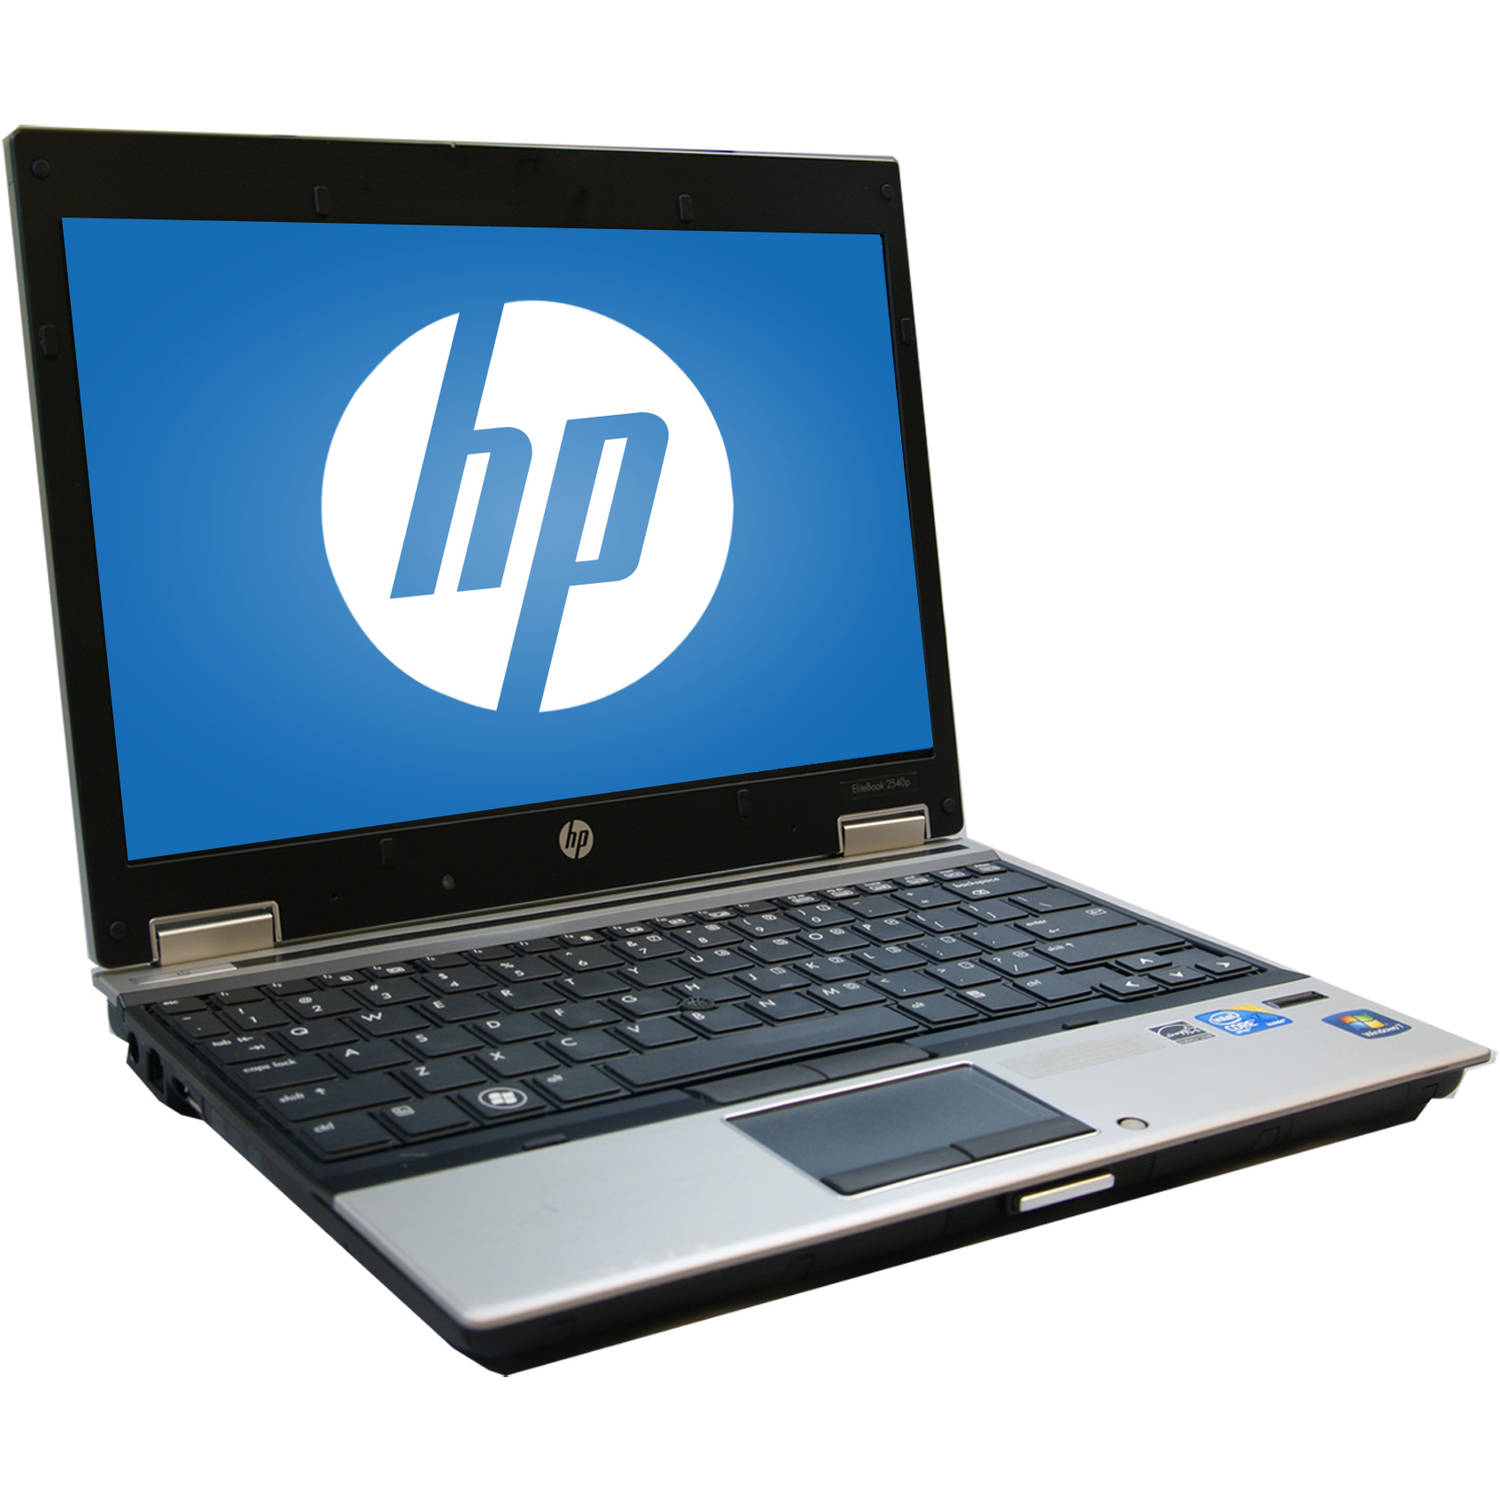 "Refurbished HP 12.1"" 2540P Laptop PC with Intel Core i7-640LM Processor, 8GB Memory, 750GB Hard Drive and Windows 10 Pro"